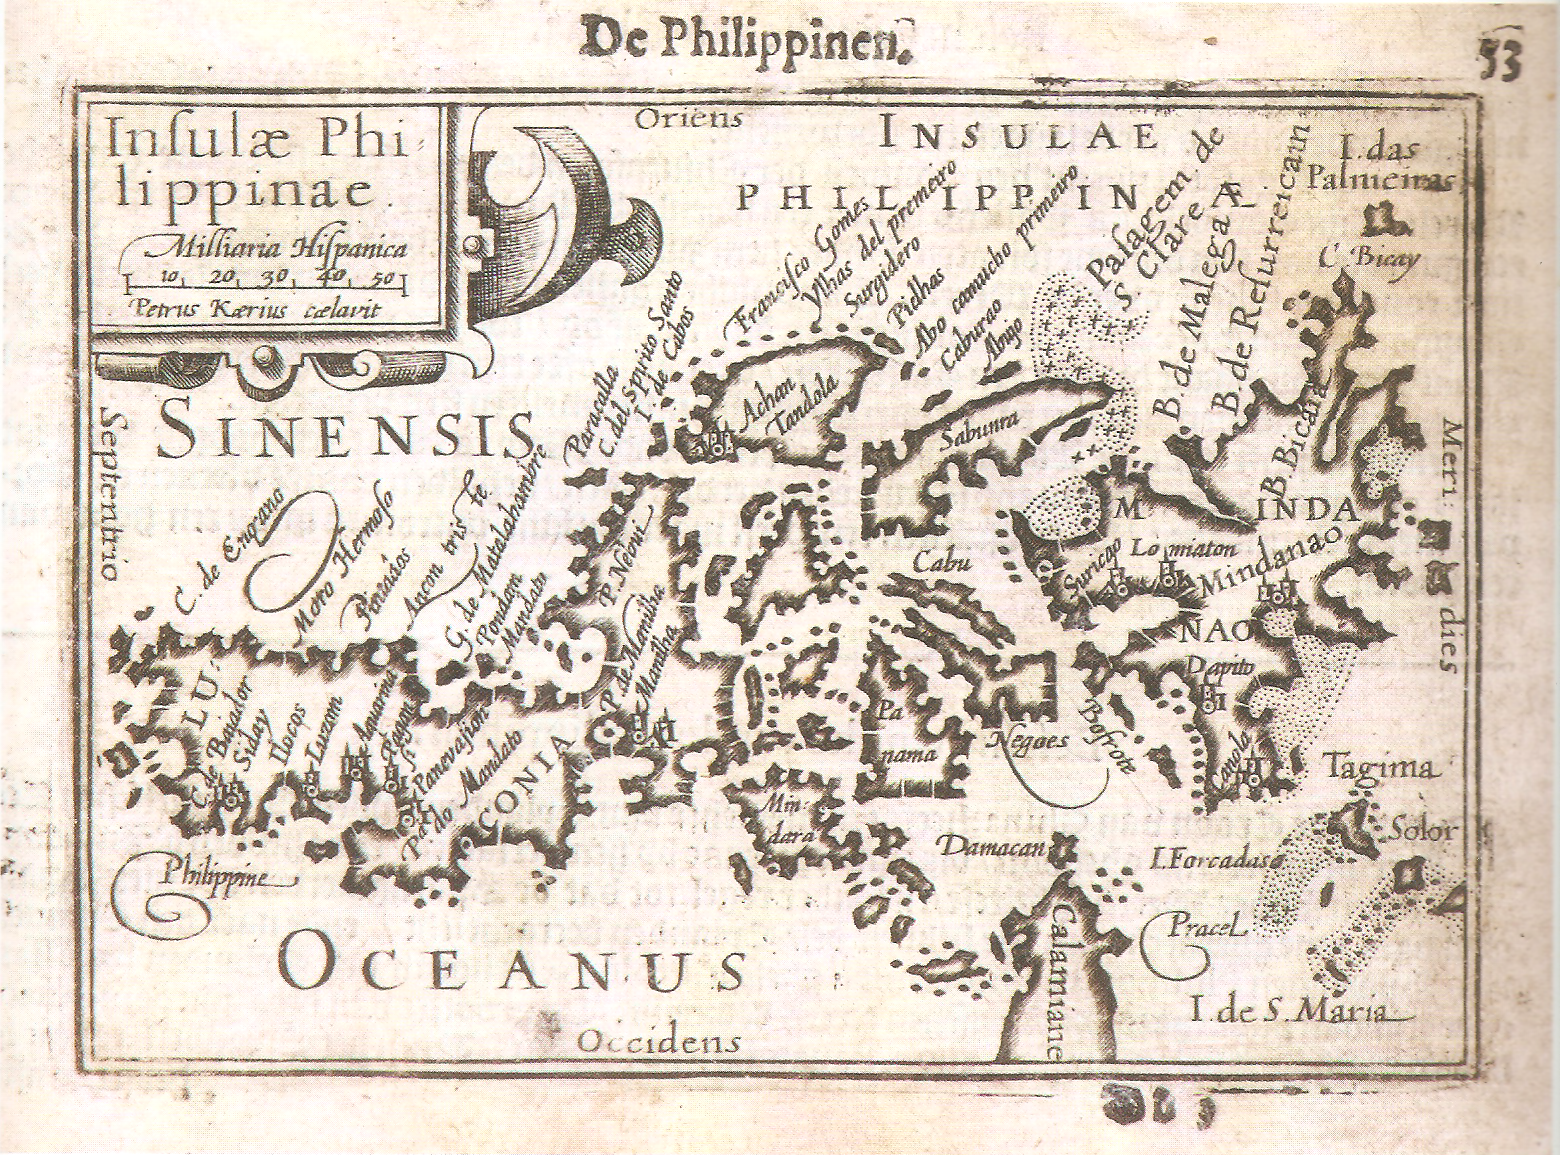 FileFirst philippine mappng Wikimedia Commons